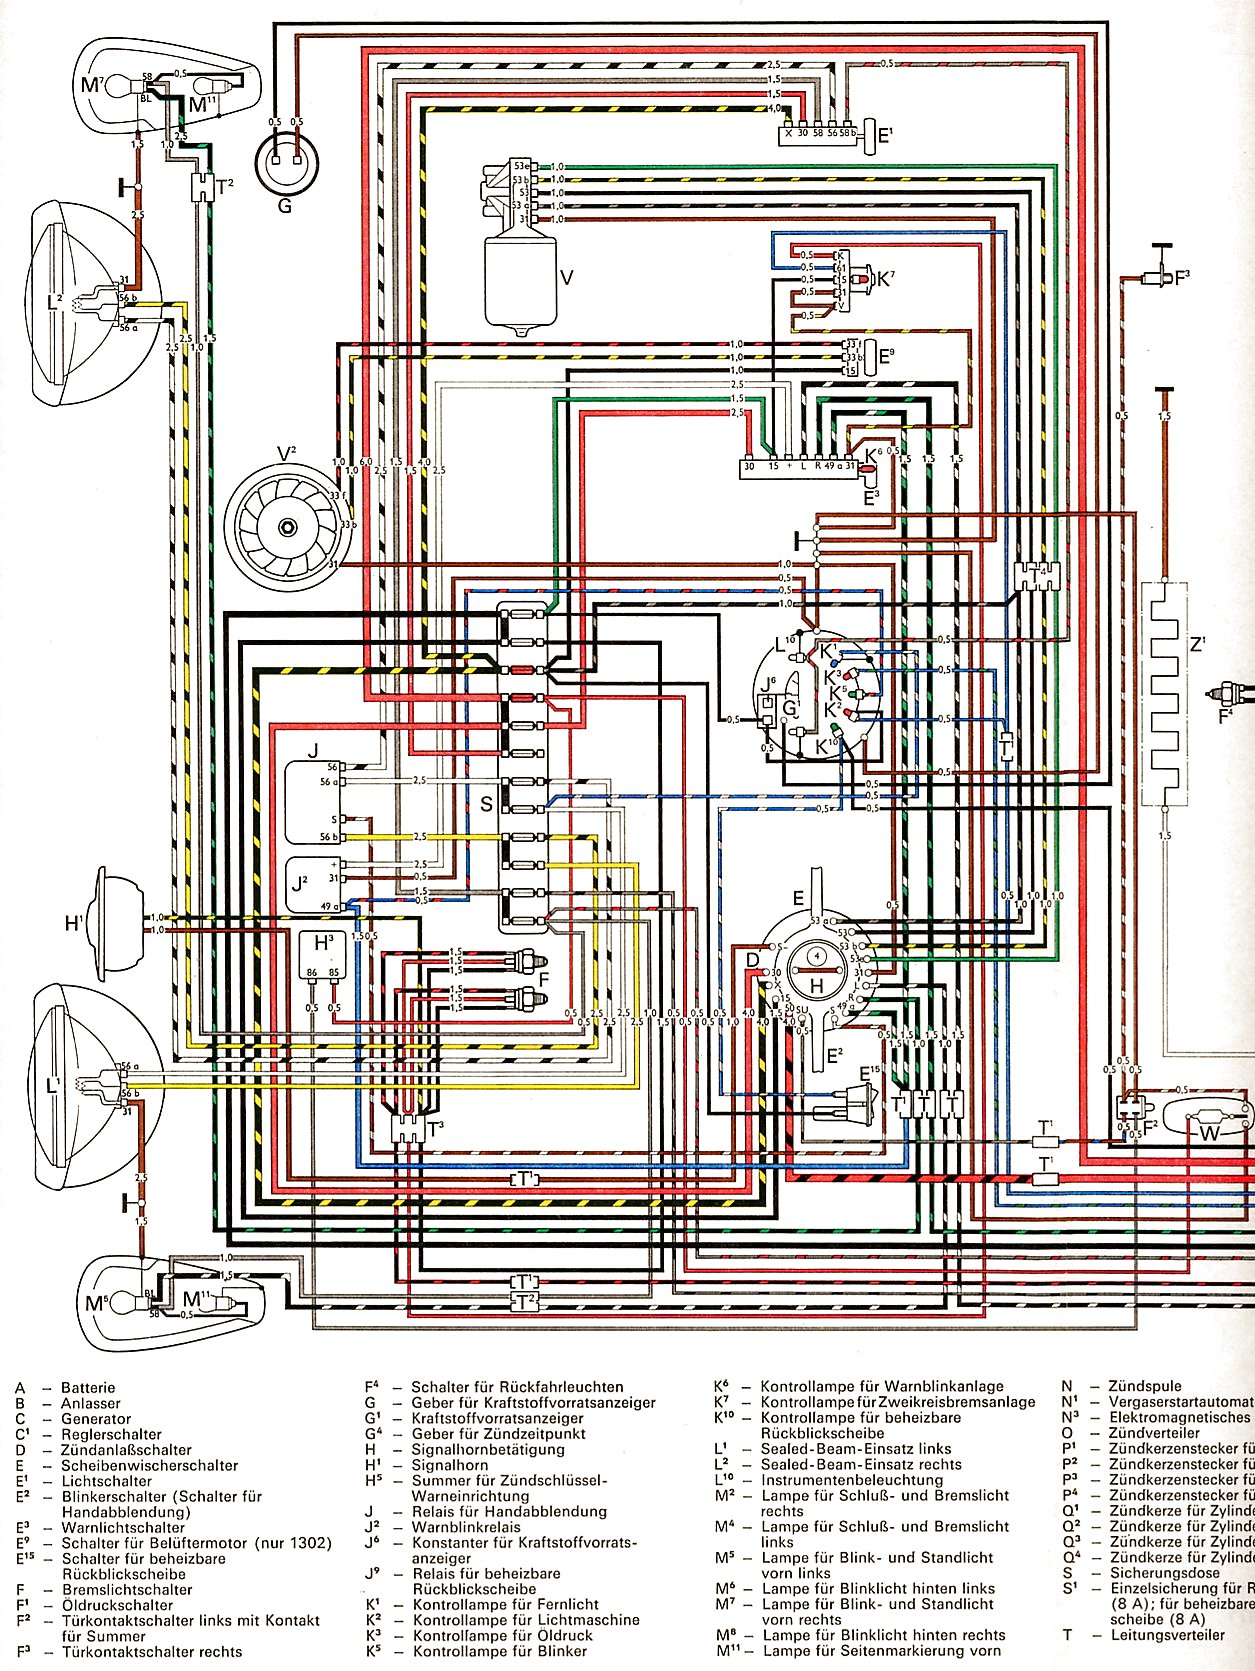 1300_and_1302_USA_from_August_1971 1 wiring help 1974 vw beetle shoptalkforums com 1974 super beetle wiring diagram at soozxer.org